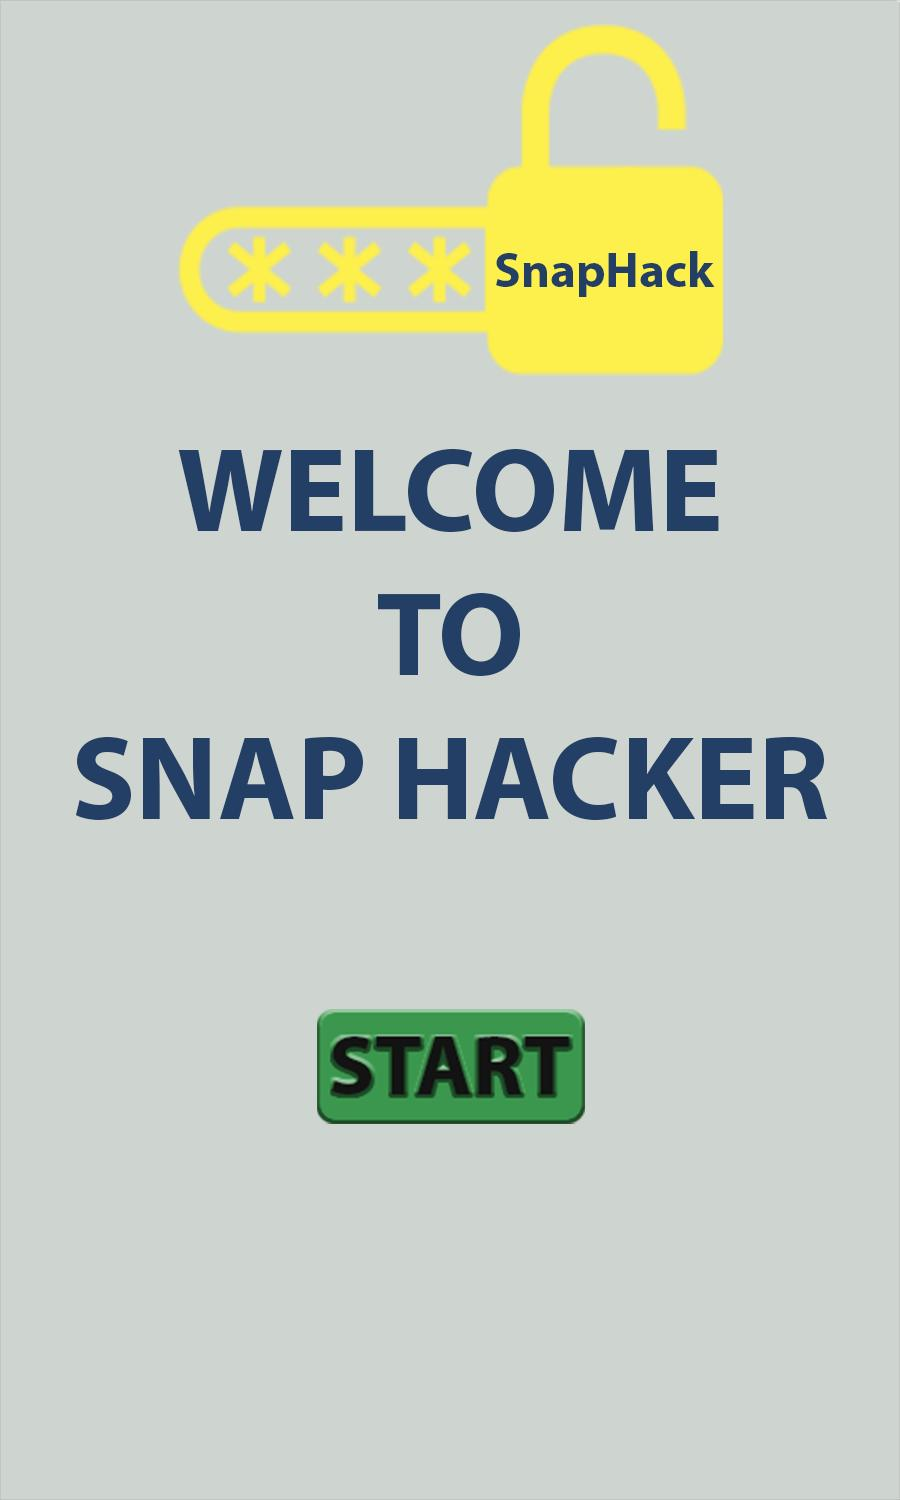 snaphack password Hacker prank for Android - APK Download